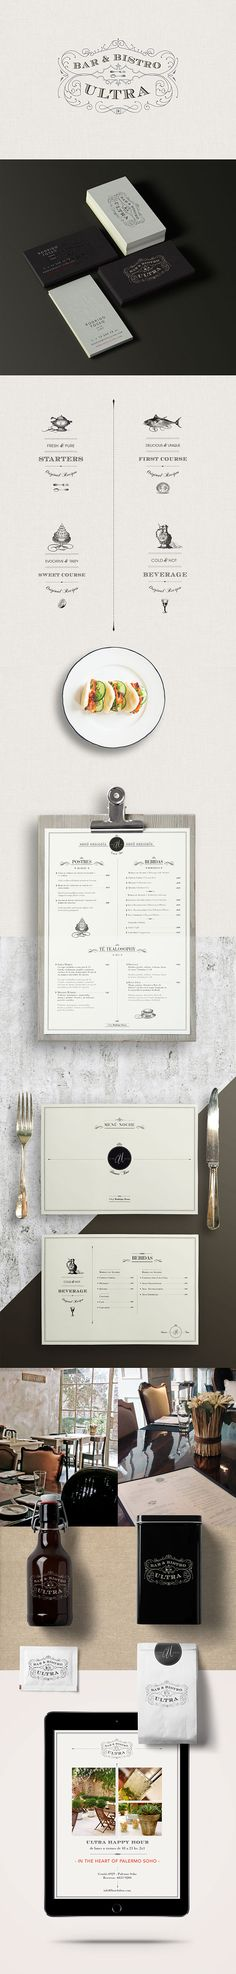 Ultra Bar & Bistro. Ultra classic. #branding #design (View more at www.aldenchong.com)